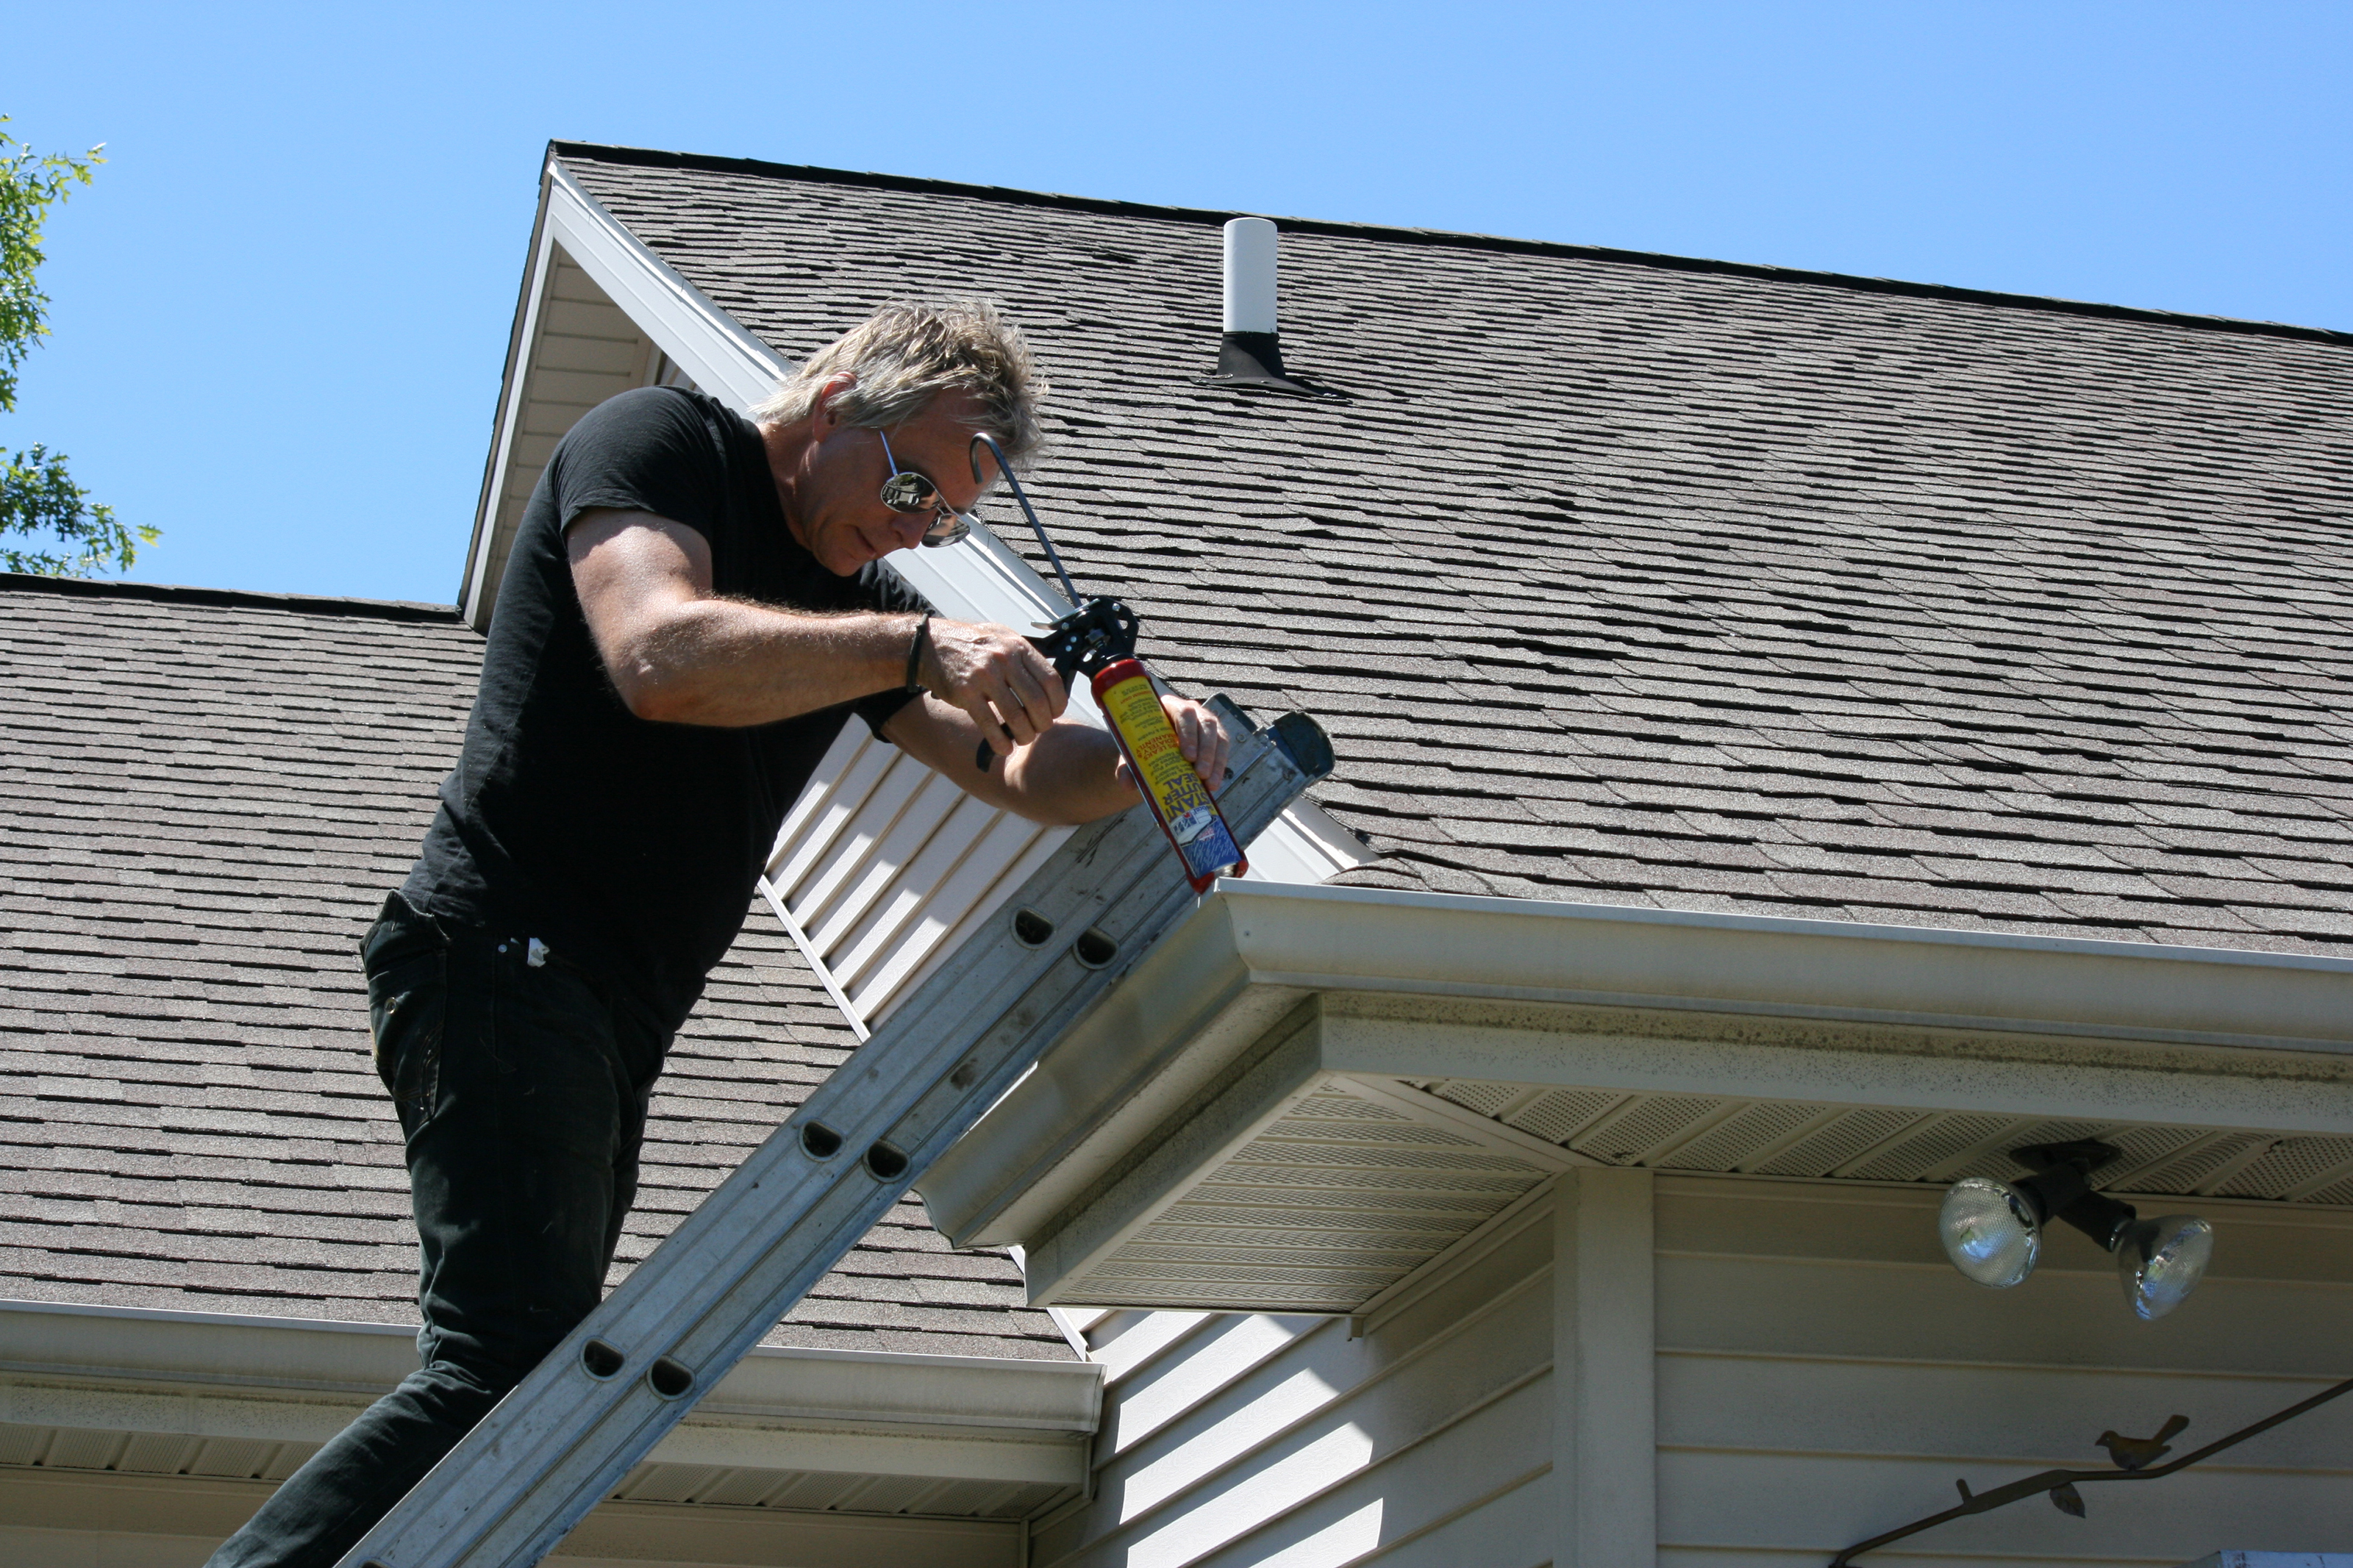 repair or replace the gutters